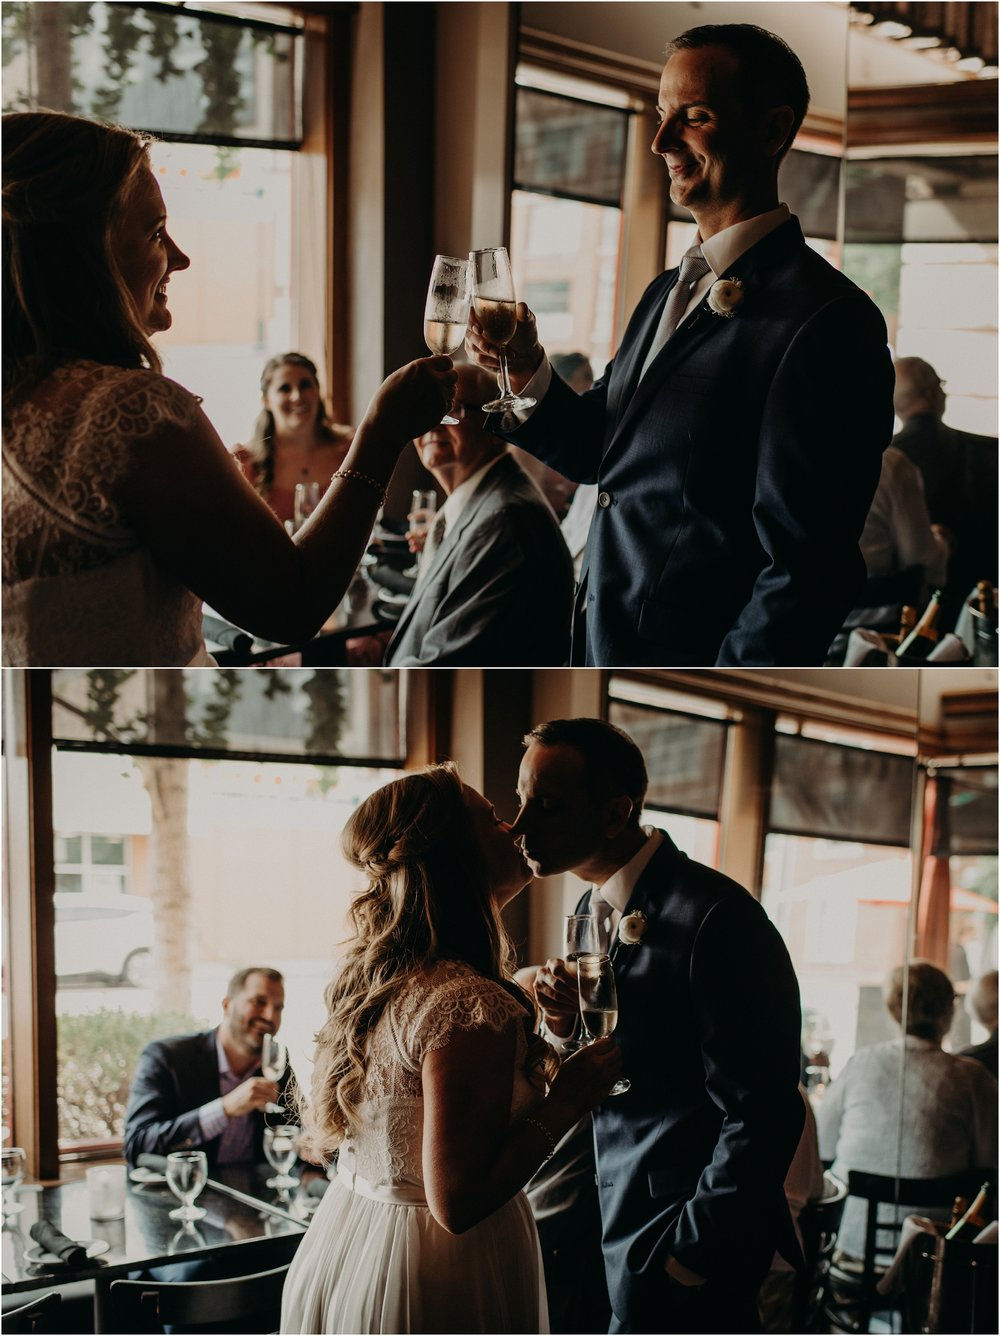 The couple shares a kiss after the clink champagne flutes